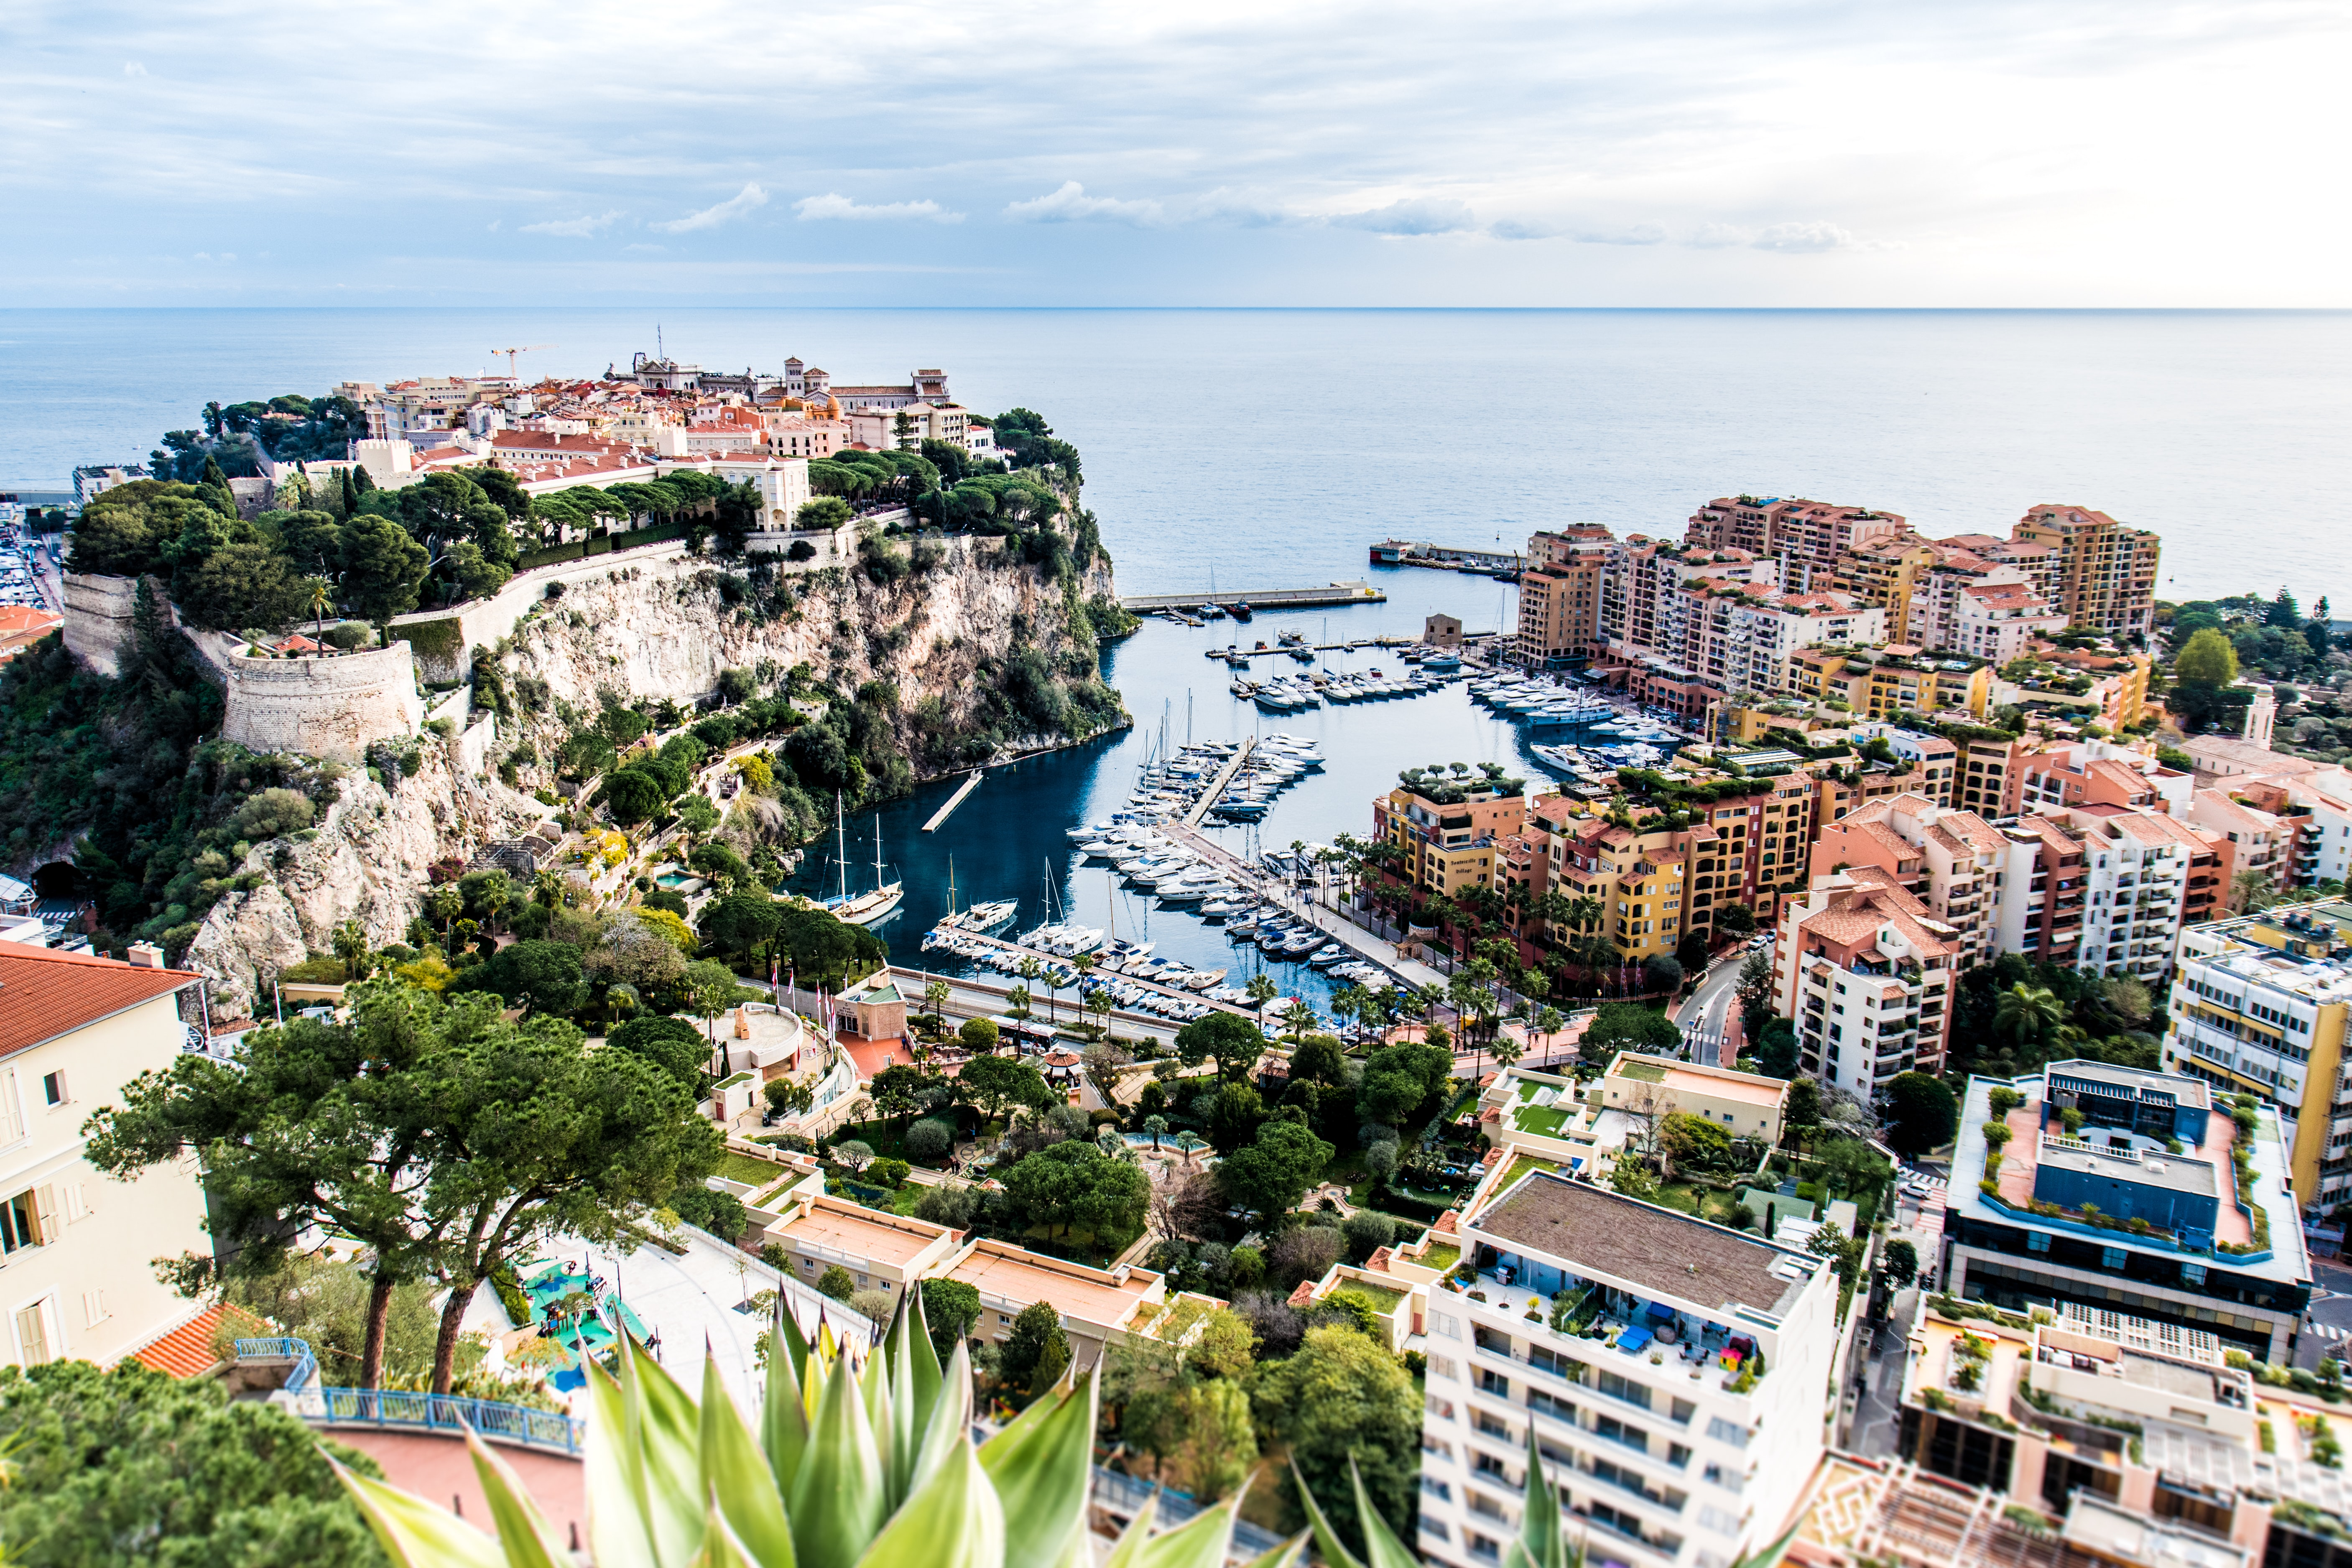 Monaco is becoming an unexpected leader in sustainability